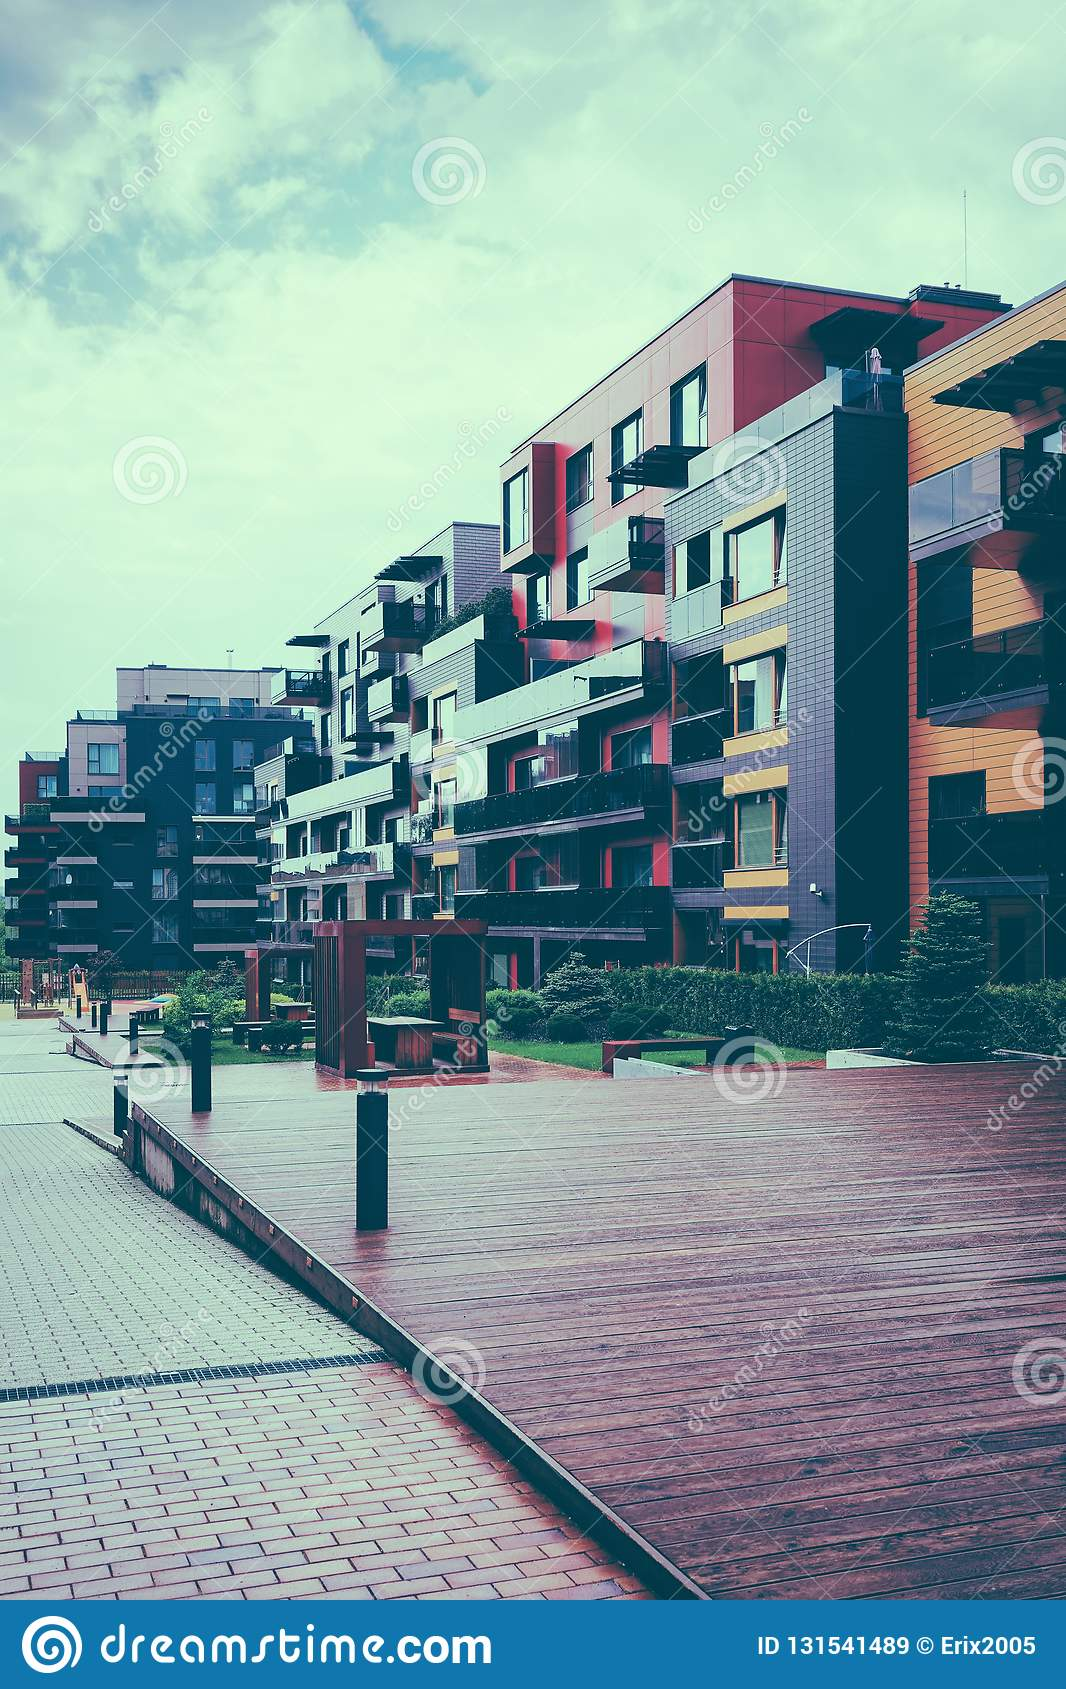 European Complex Of Residential Buildings Stock Image Image Of Exterior Design 131541489